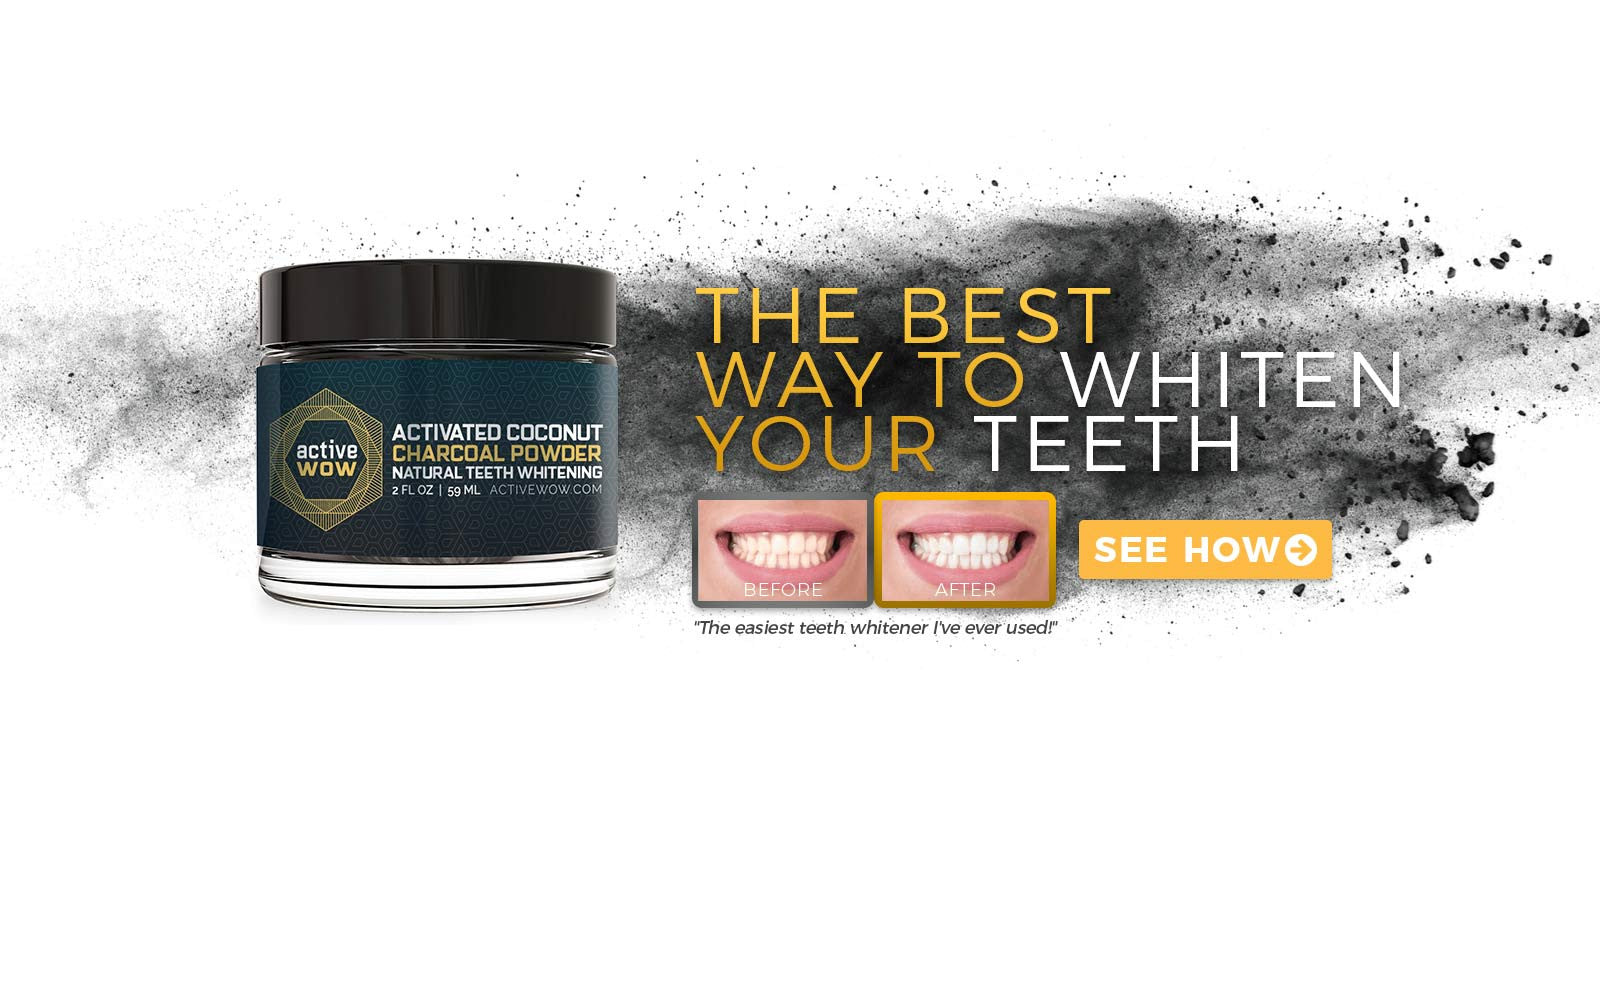 ActiveWow Activated Charcoal Natural Teeth Whitening Powder